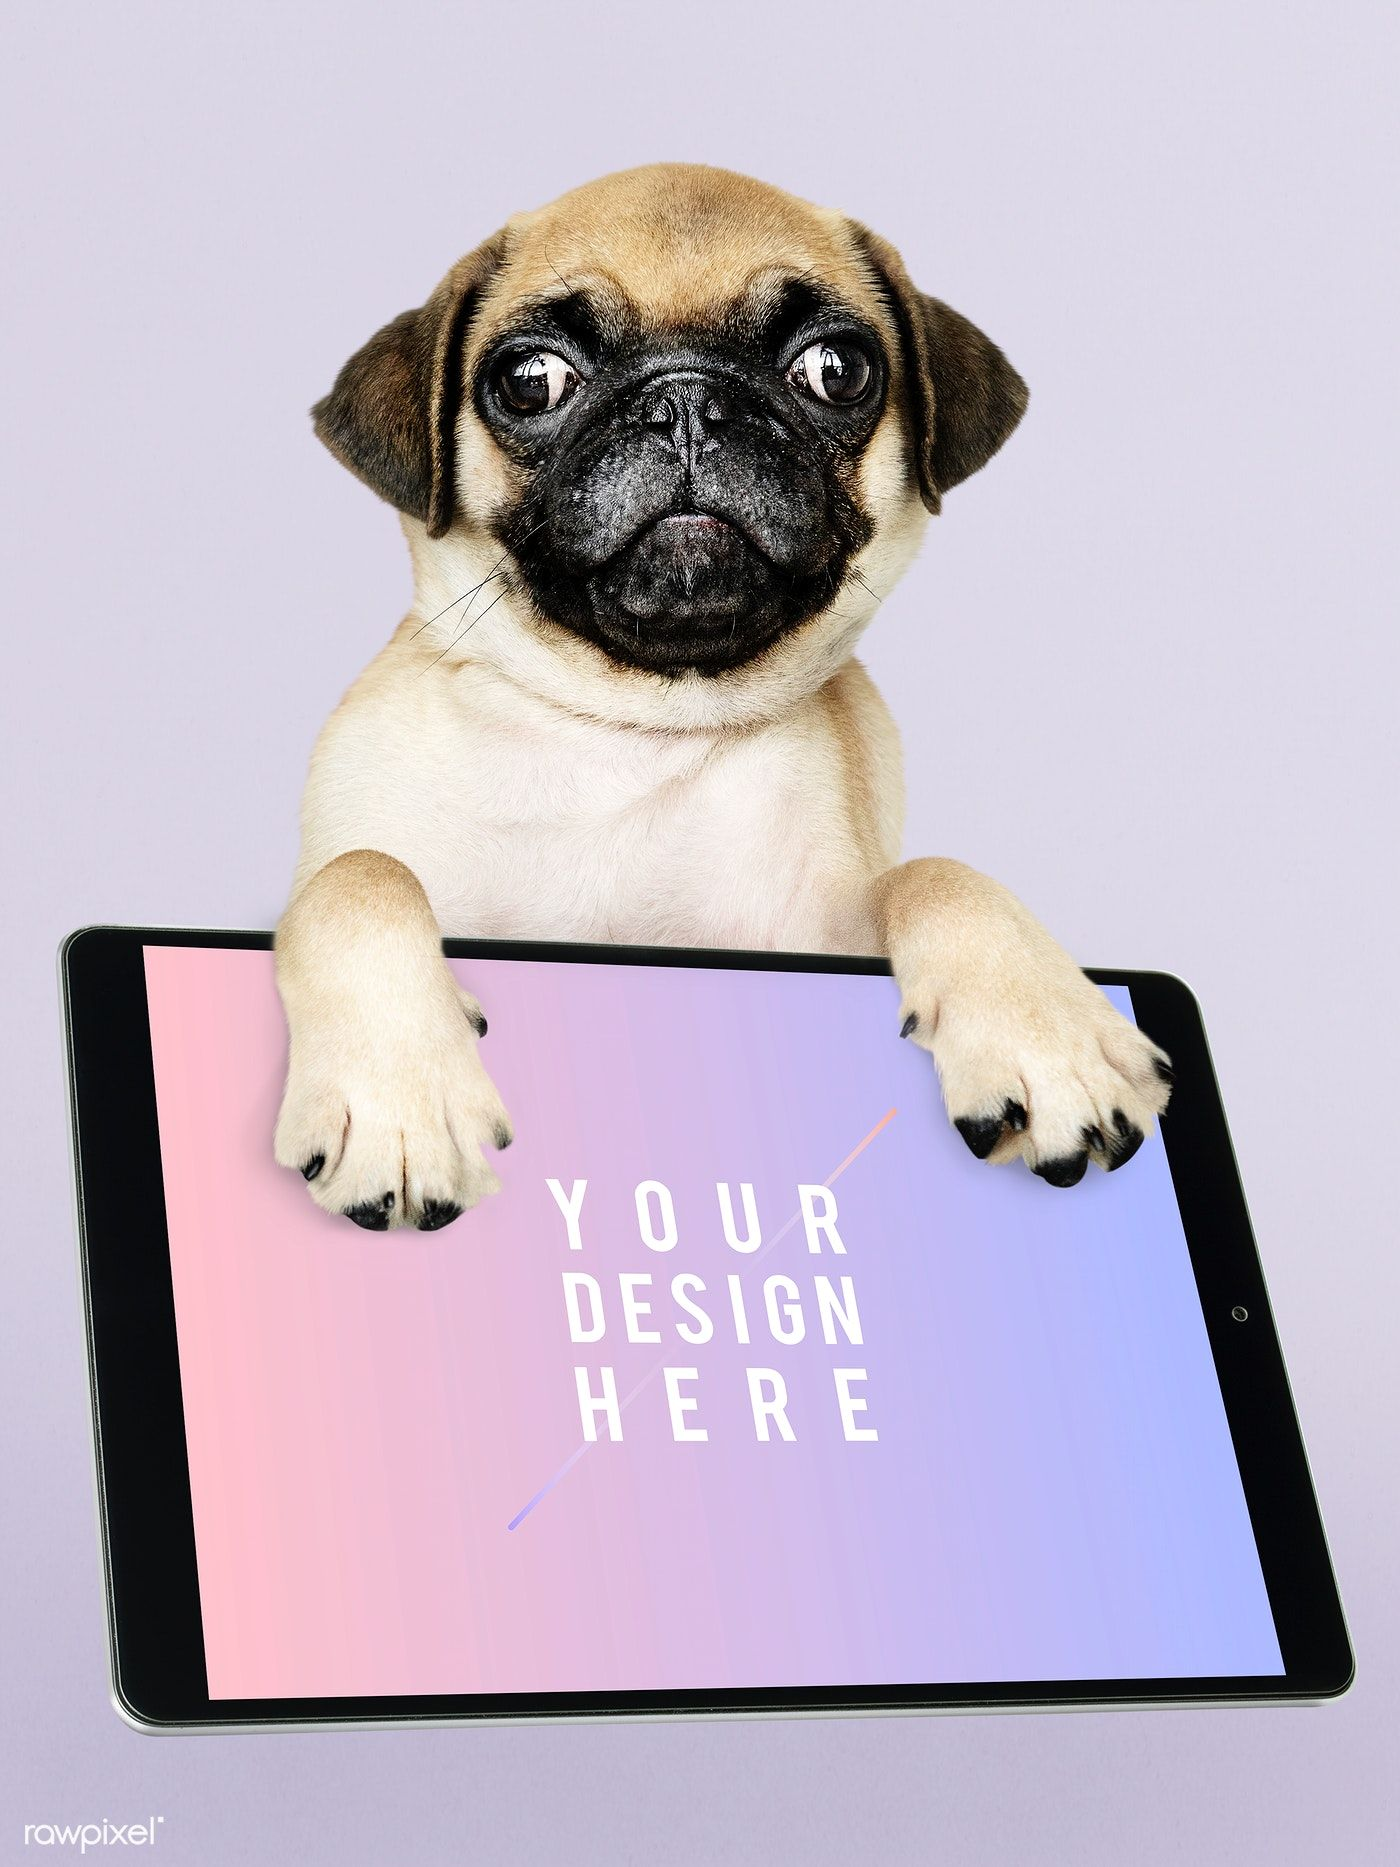 Download Premium Psd Of Adorable Pug Puppy With Digital Tablet